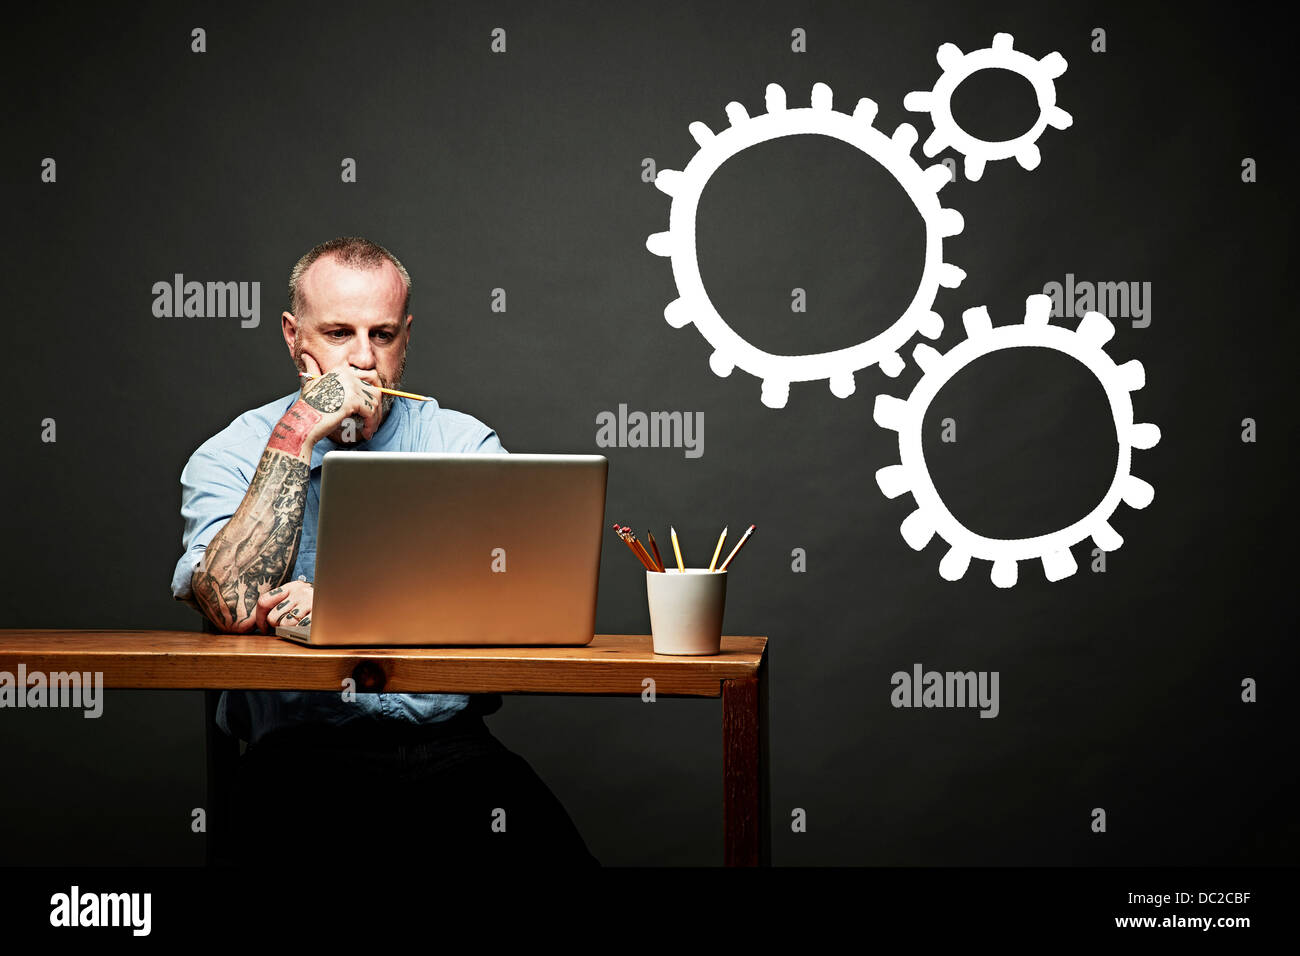 Conceptual image of man as cog in the wheel - Stock Image